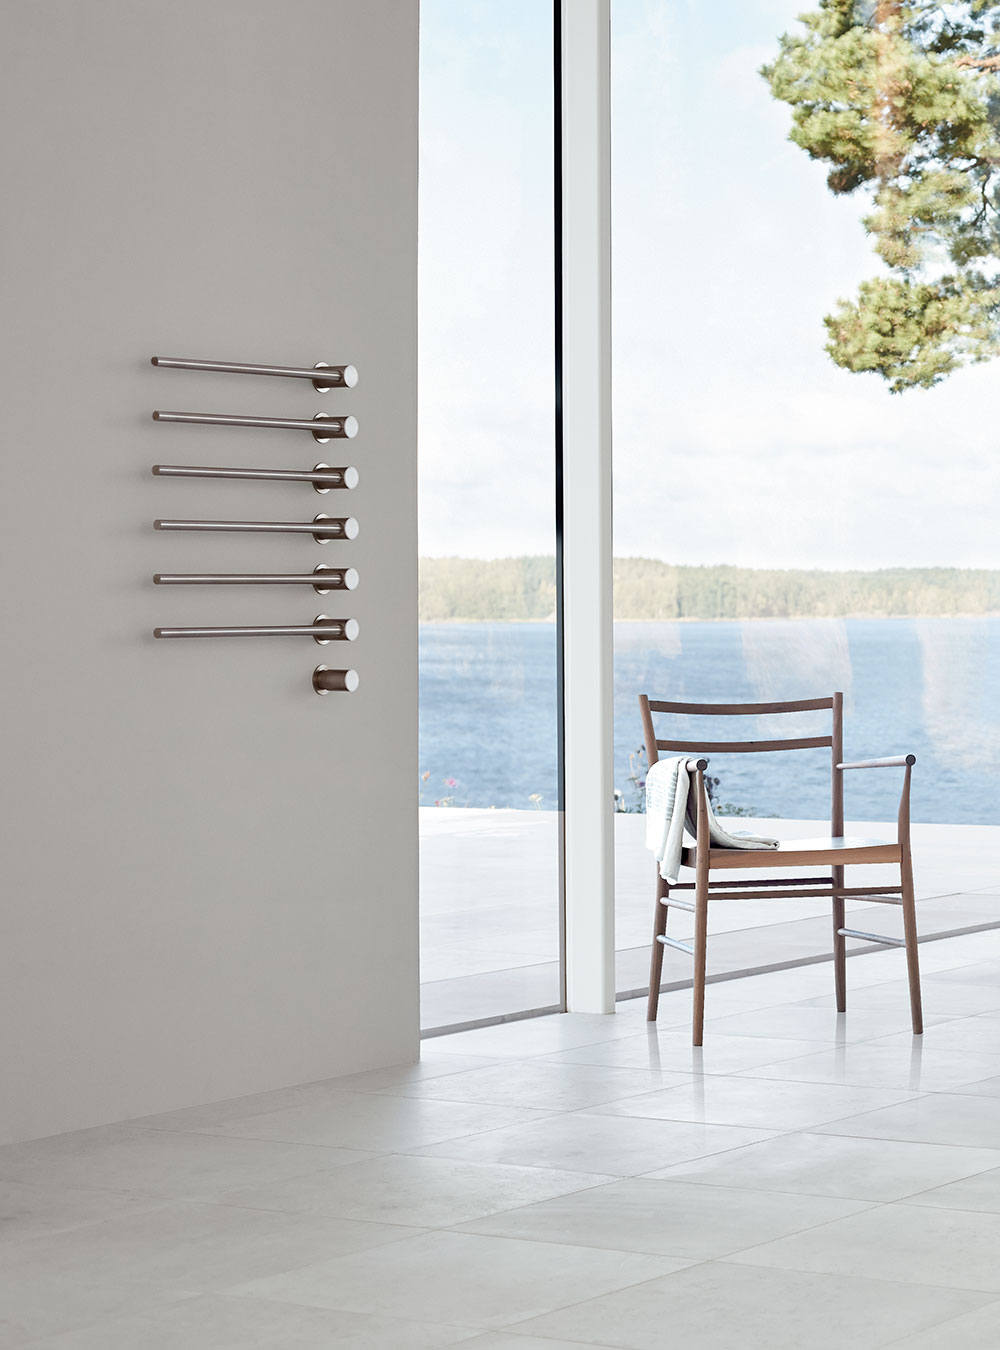 10 Easy Pieces: Electric Towel Warmers